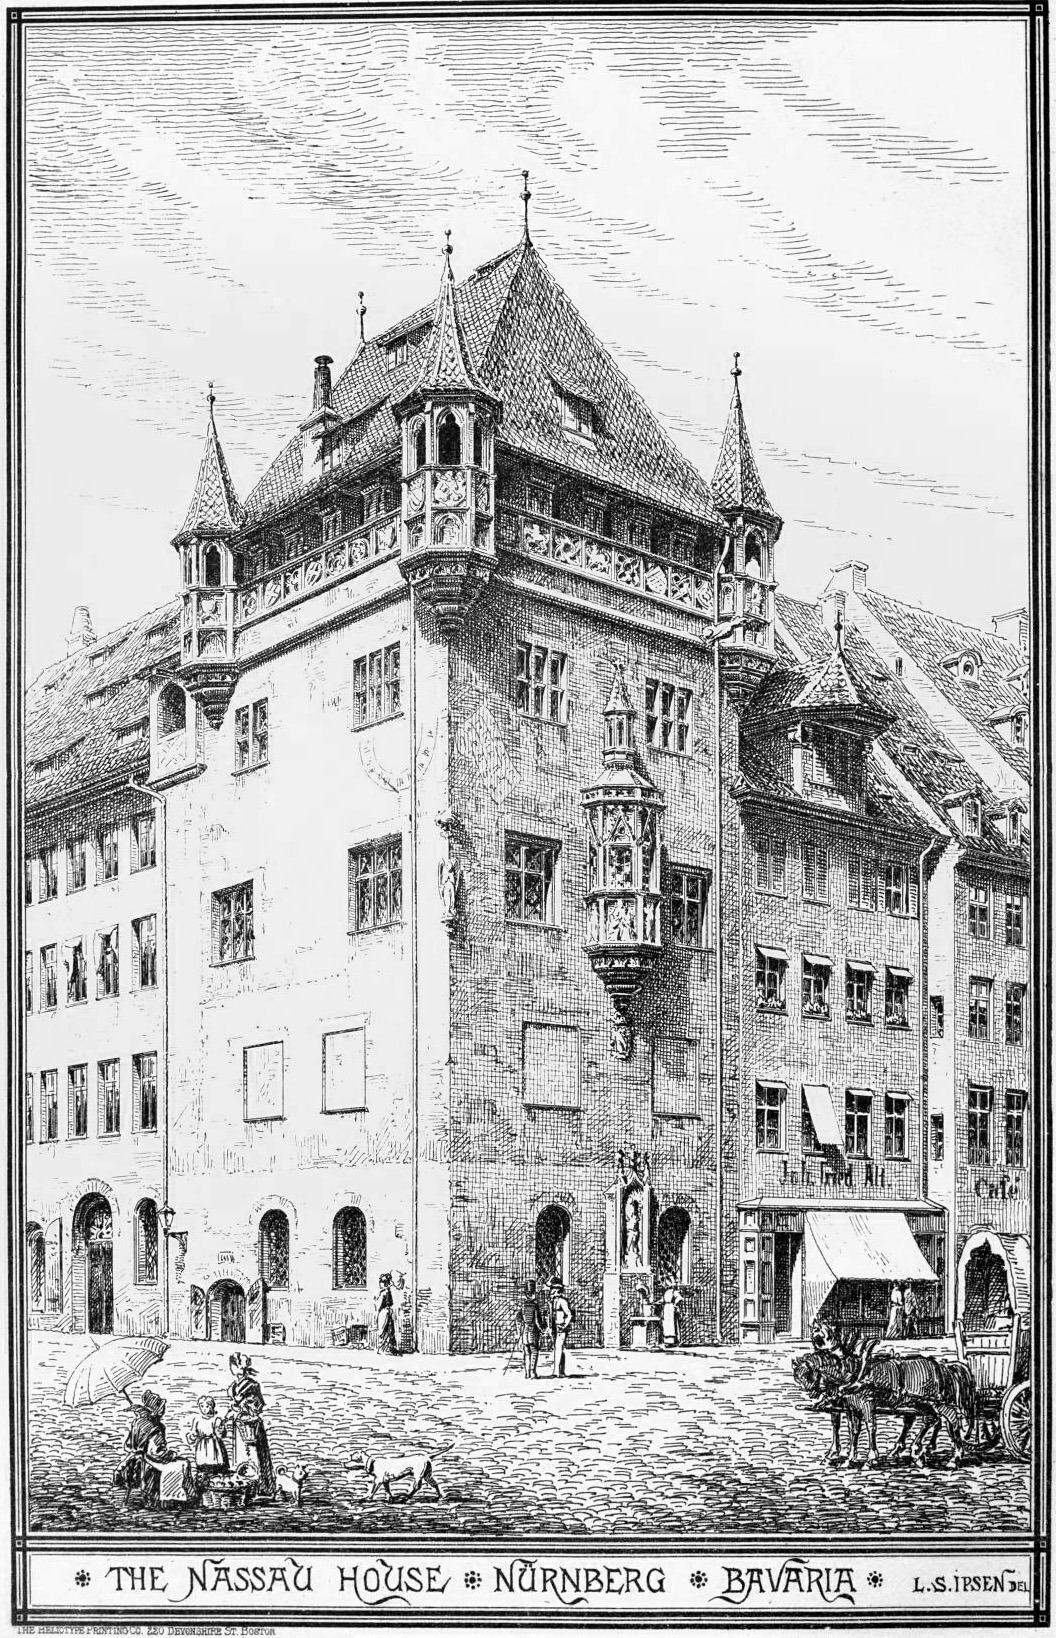 The Nassau House, Nürnberg